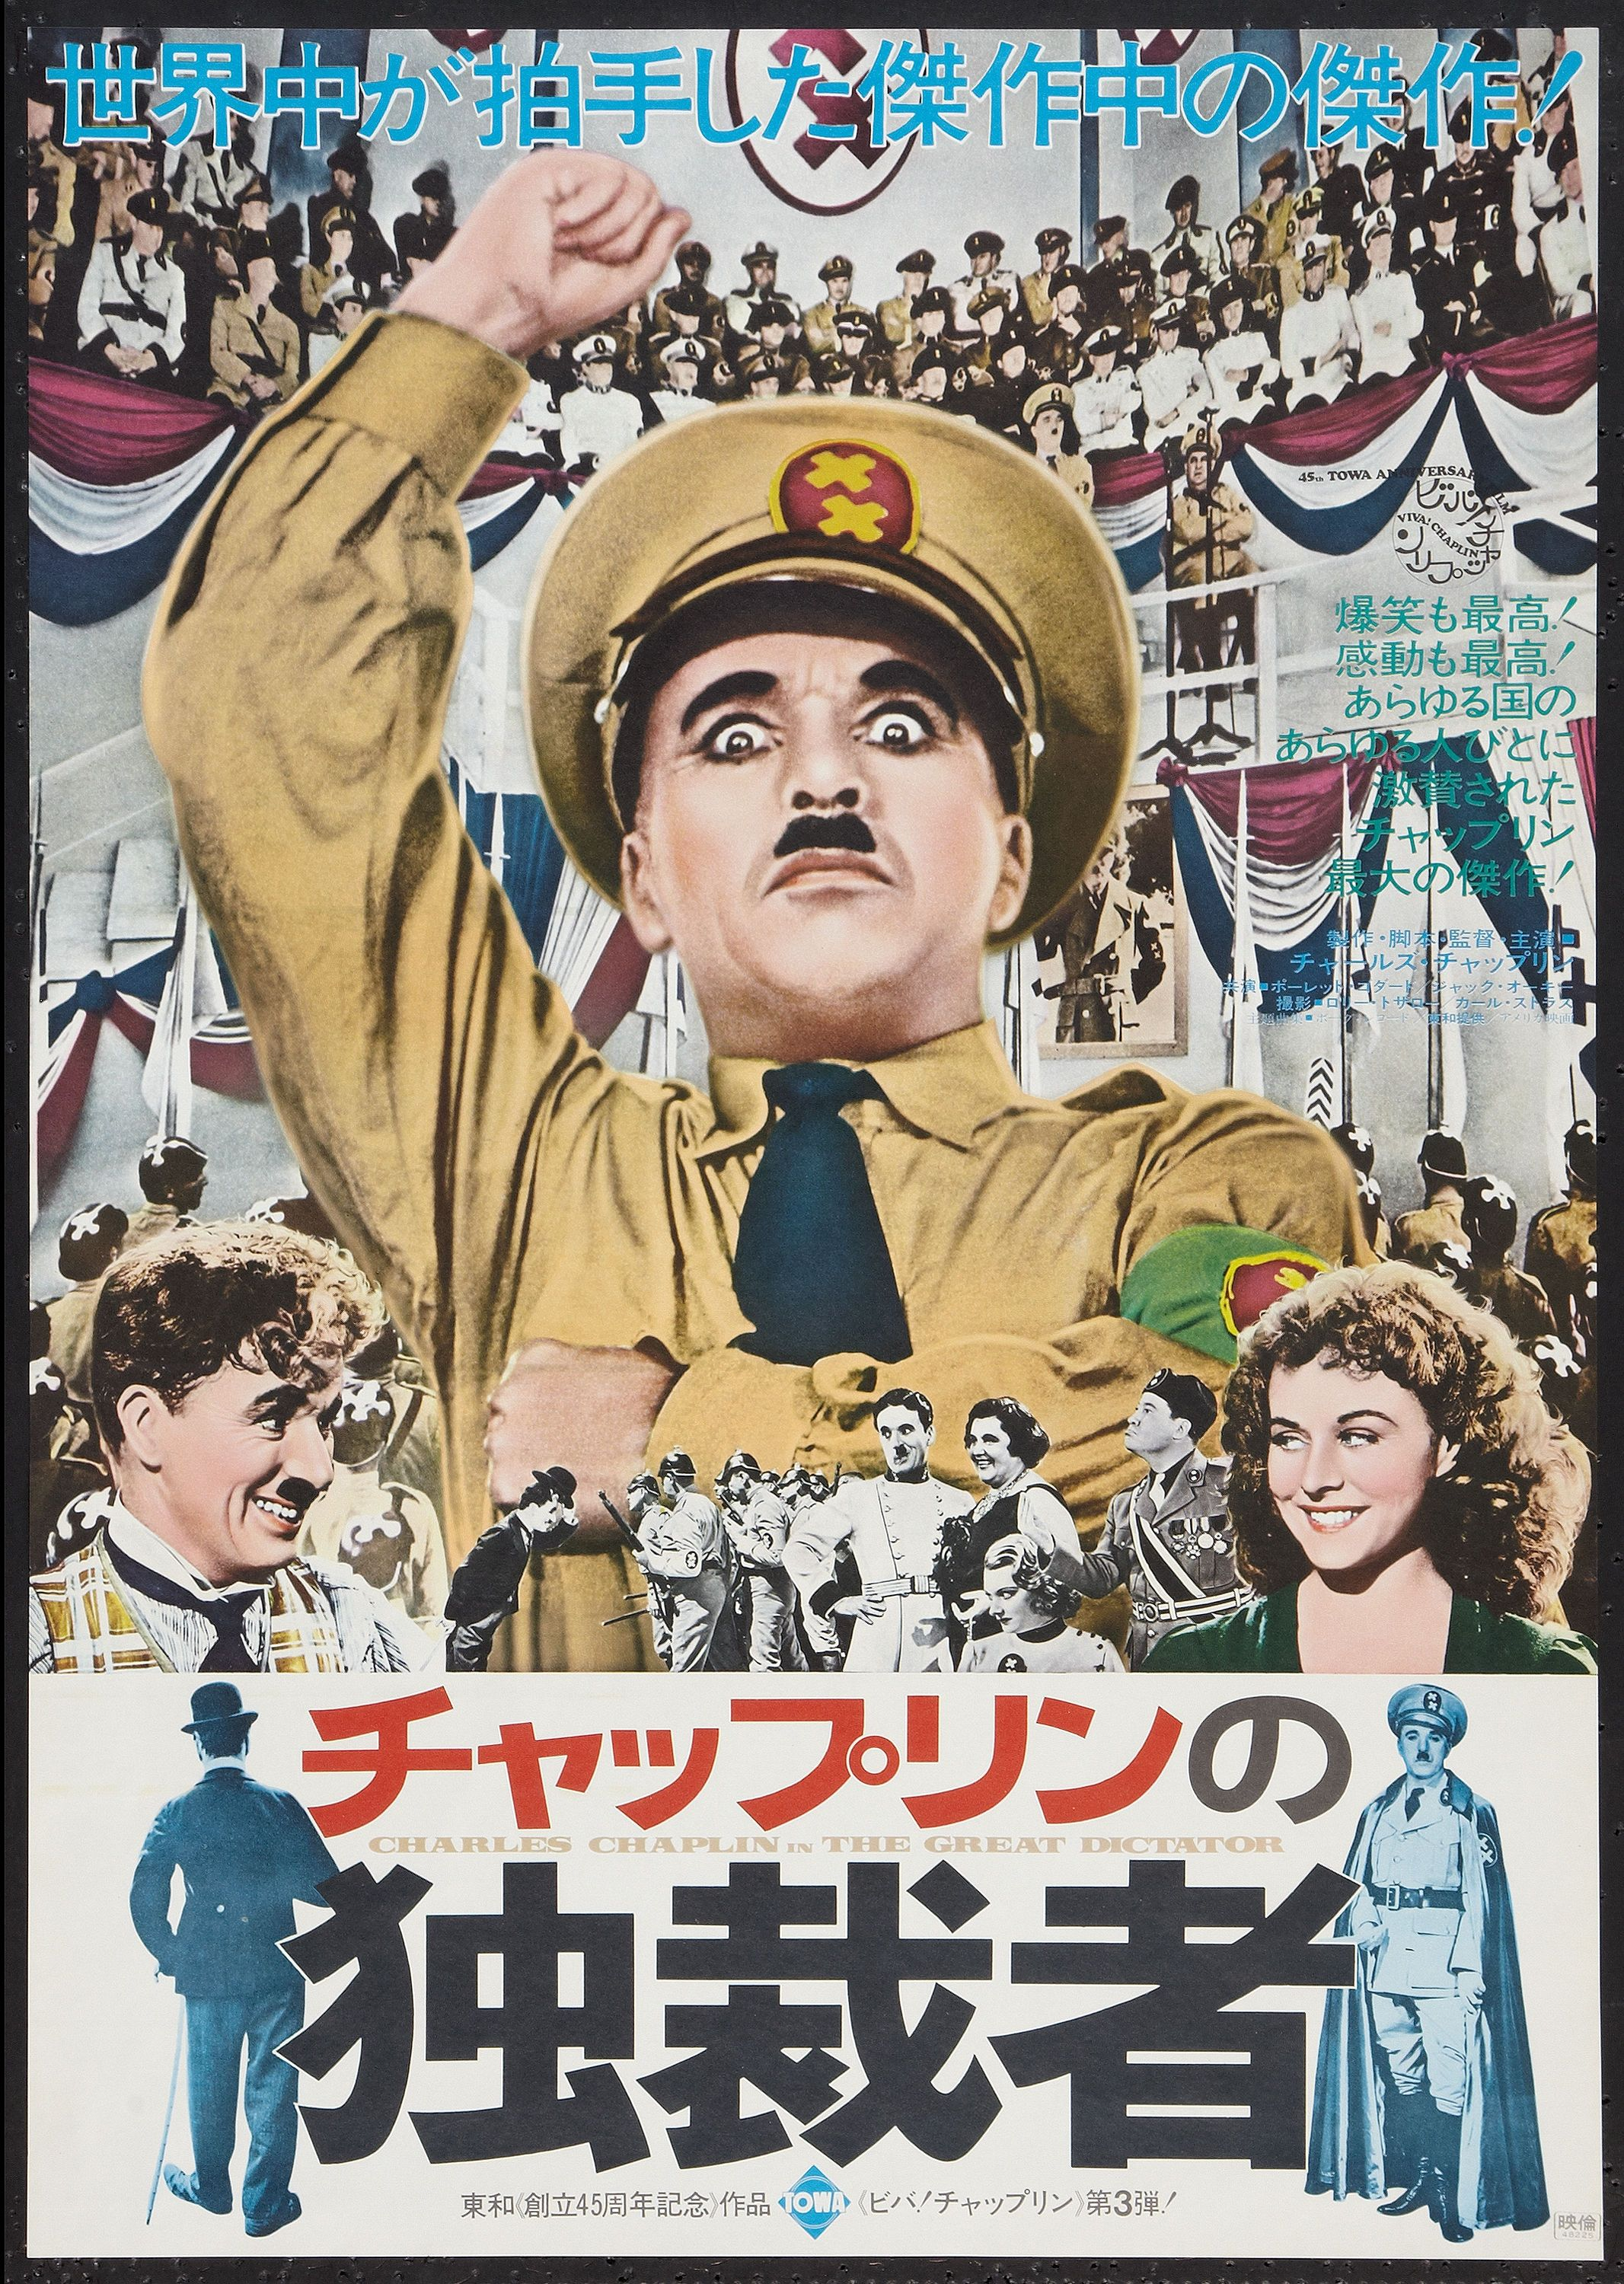 The Great Dictator Japanese poster, Cinema posters, Best